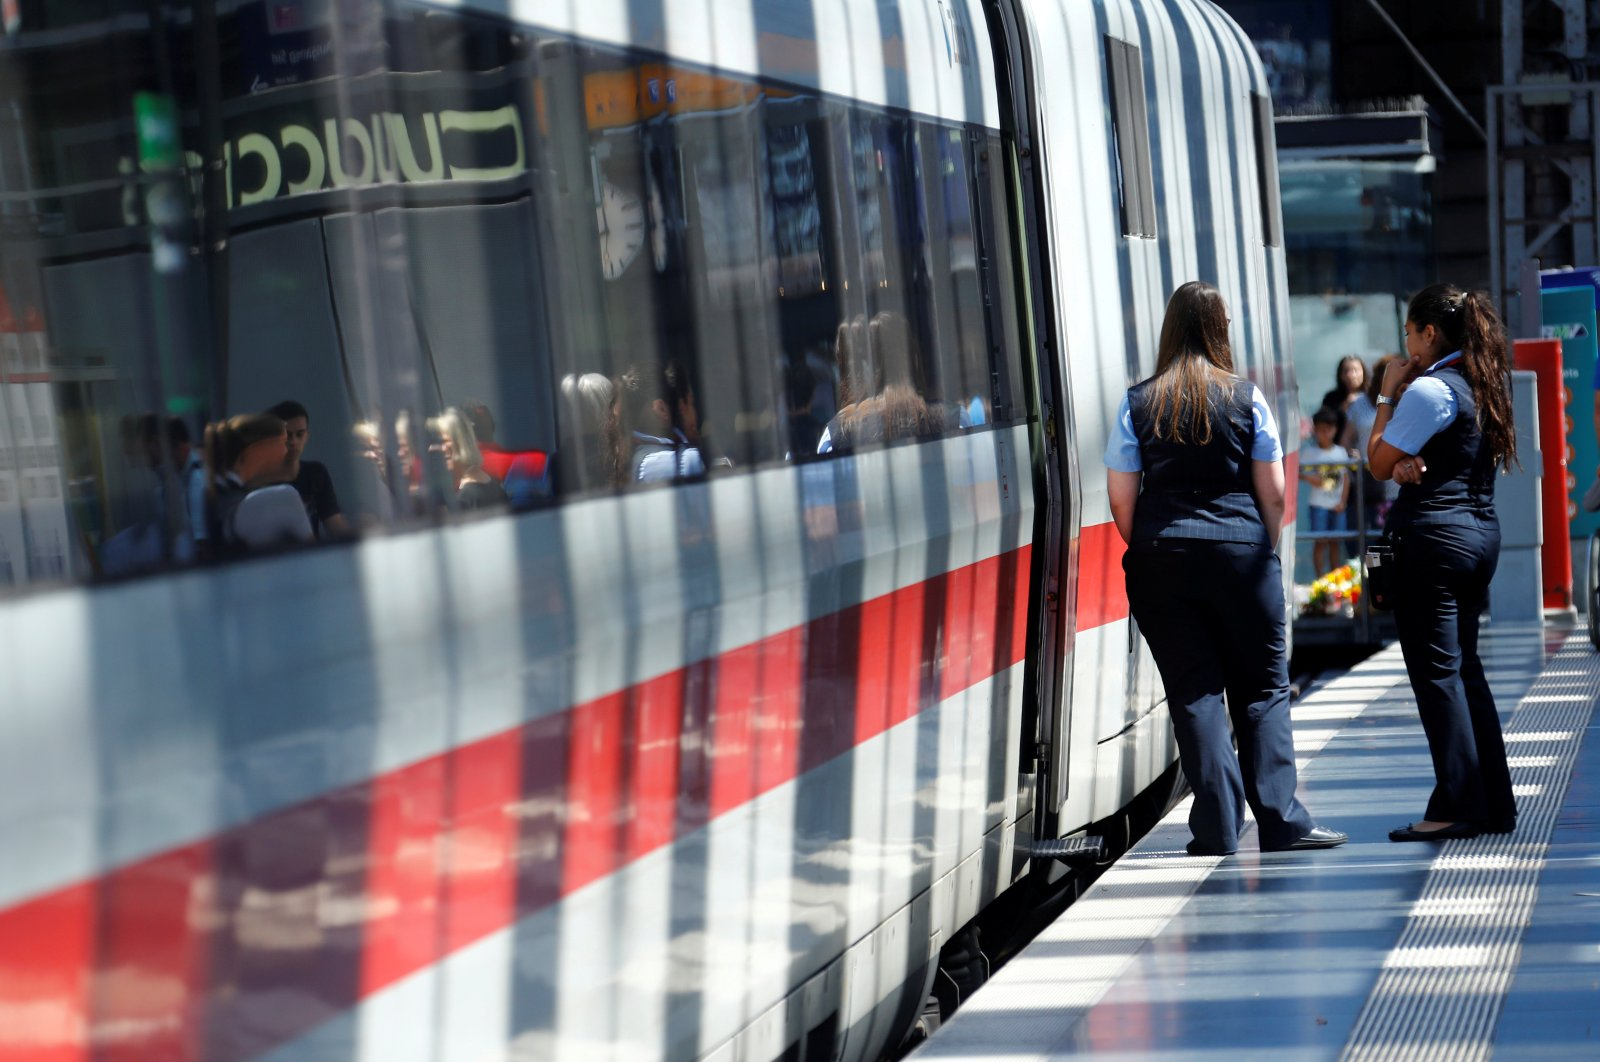 Deutsche Bahn employees stand next to an ICE high-speed train at the main train station in Frankfurt, Germany, July 30, 2019.  (Reuters Photo)